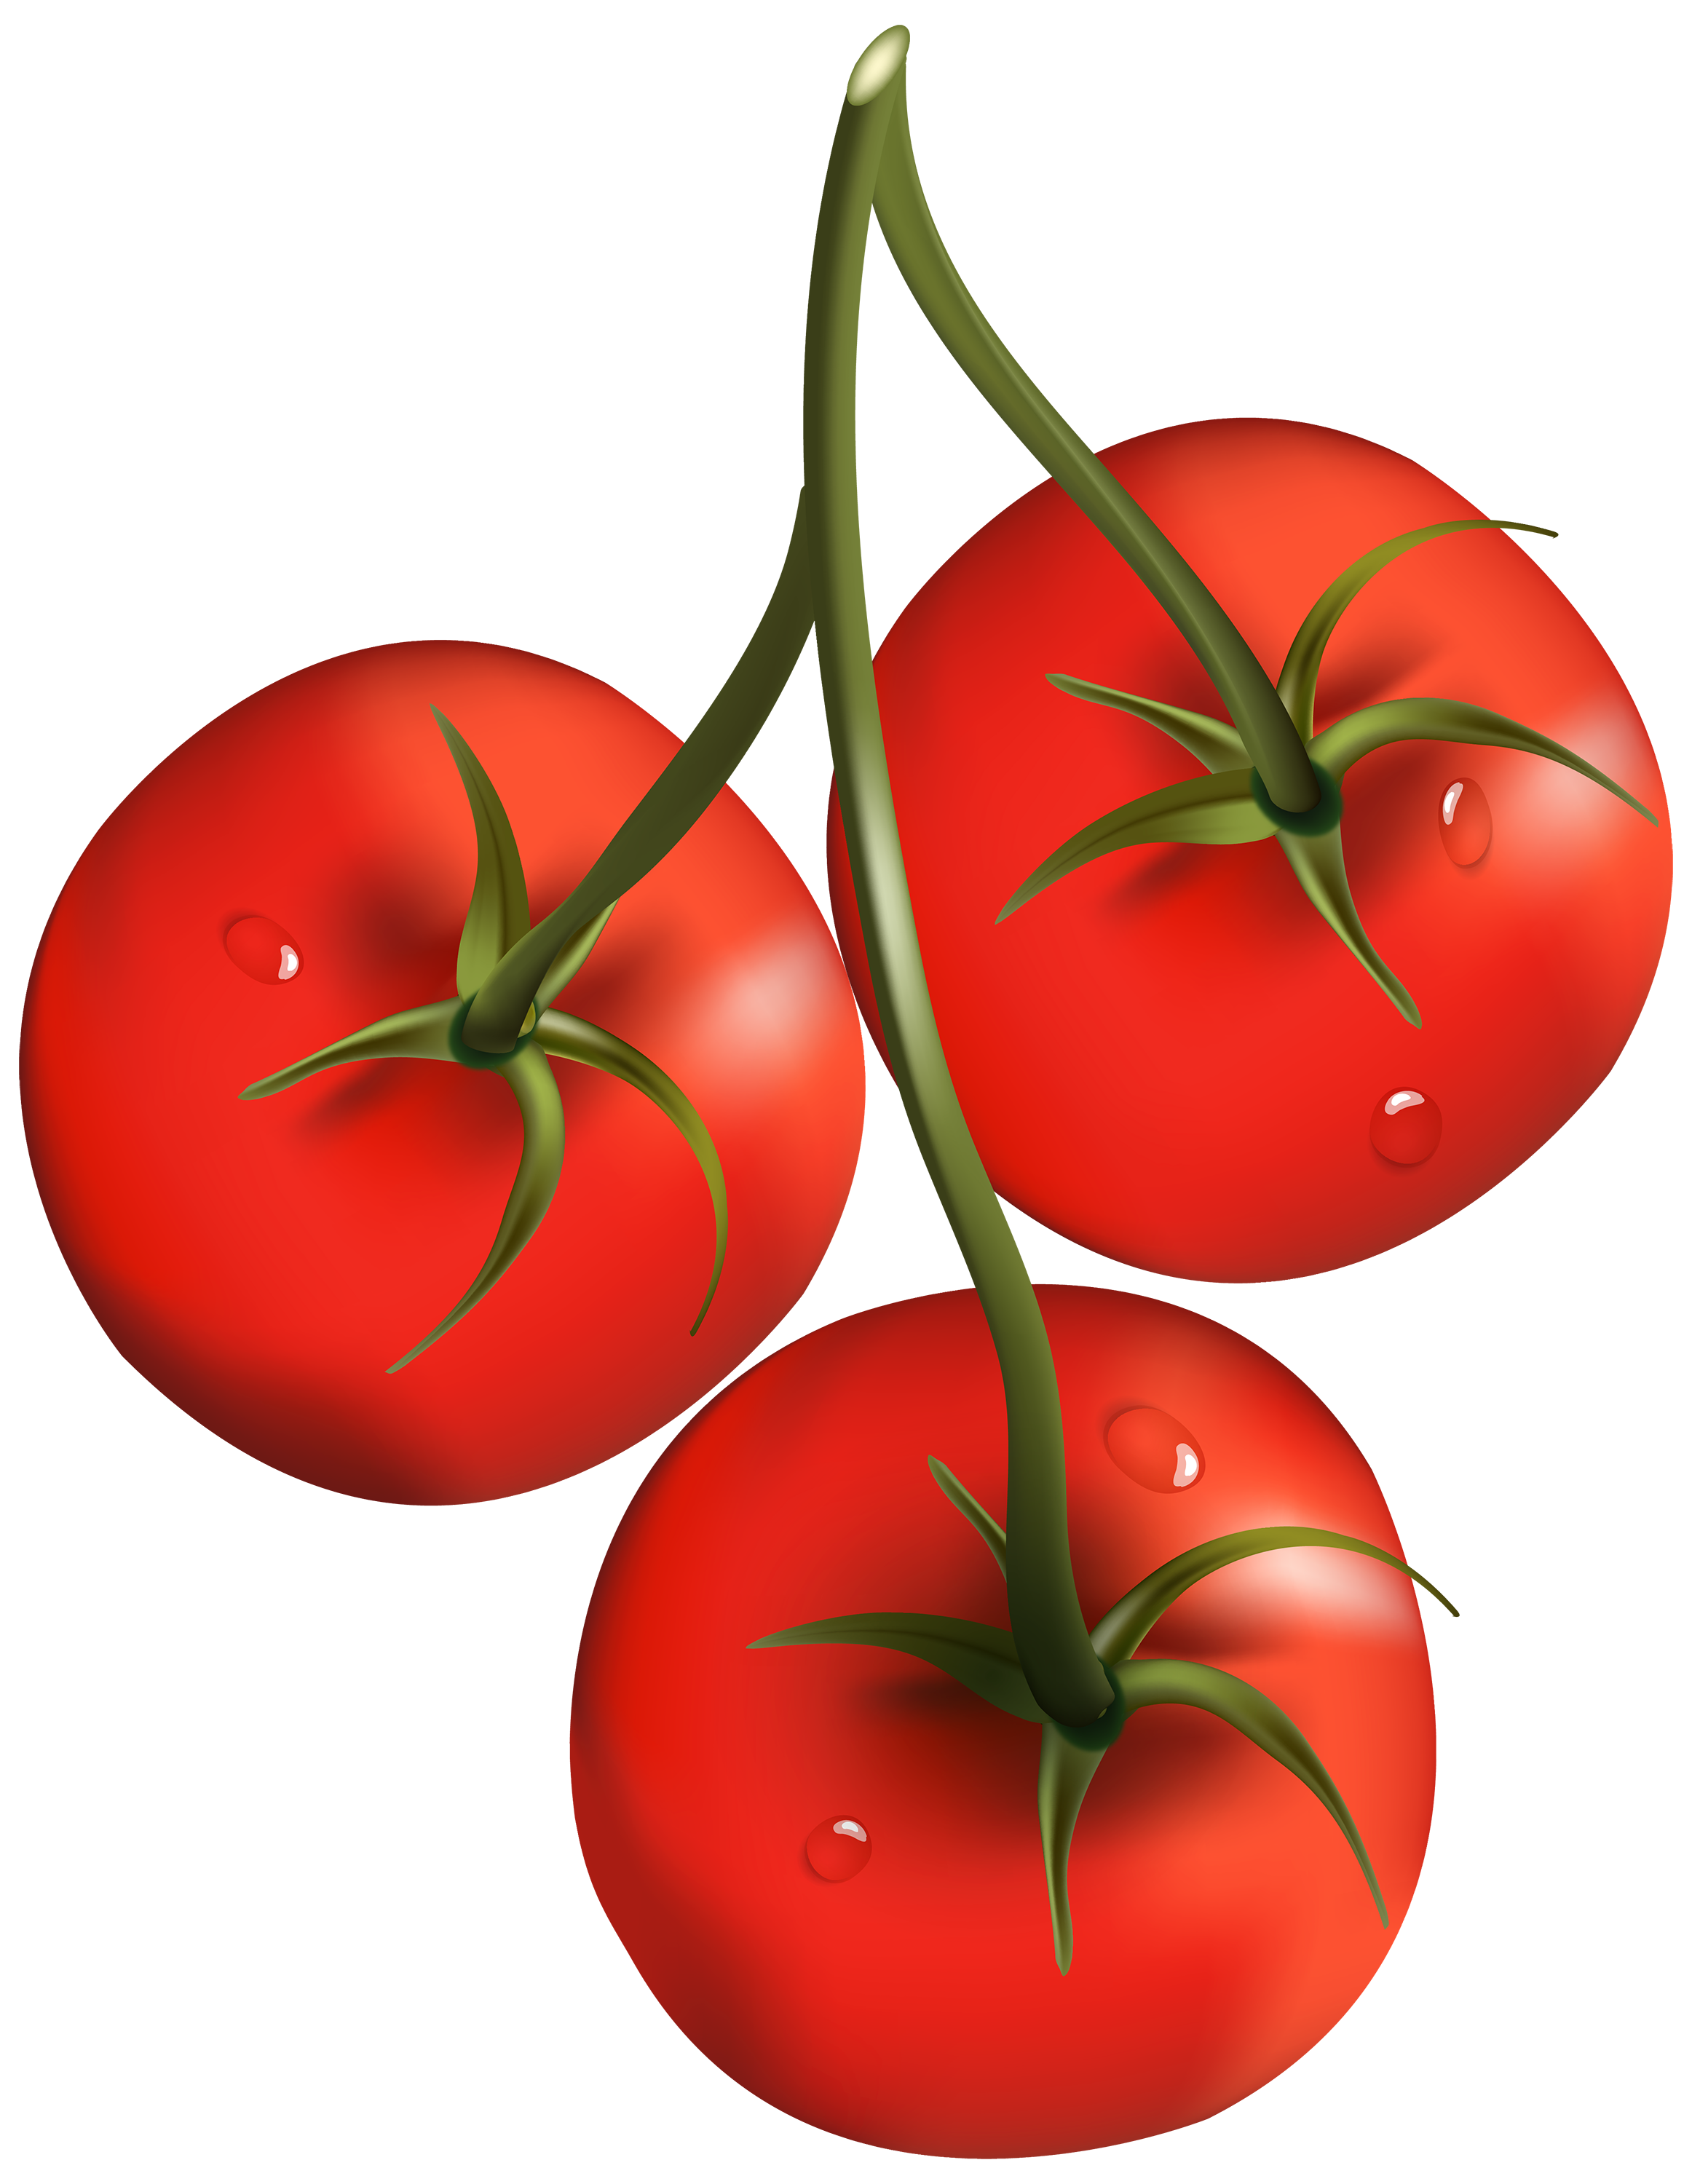 Tomatoes clipart anaar. Tomato png images free